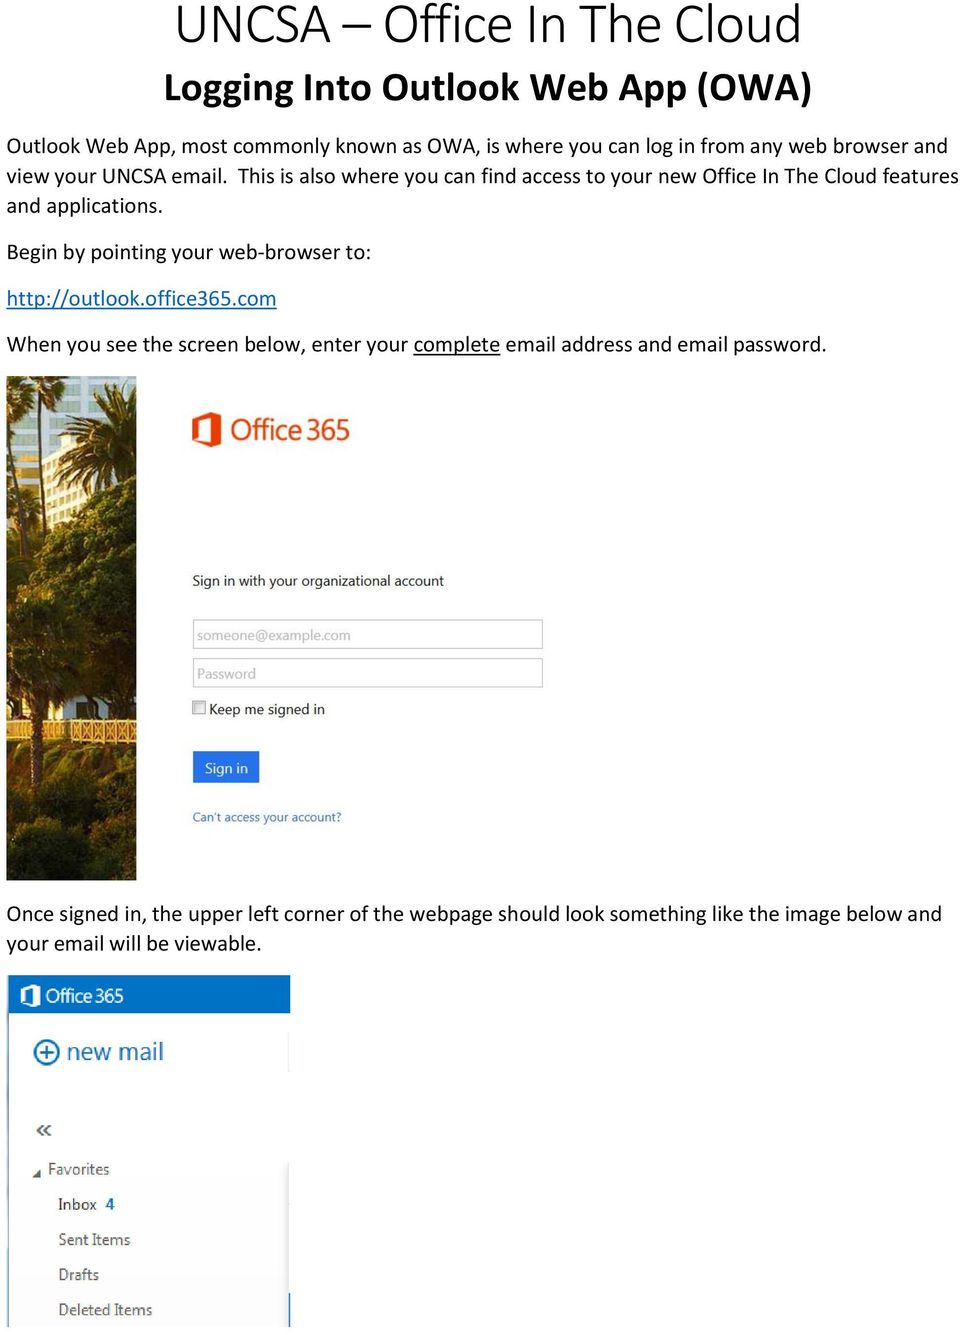 Begin by pointing your web-browser to: http://outlook.office365.